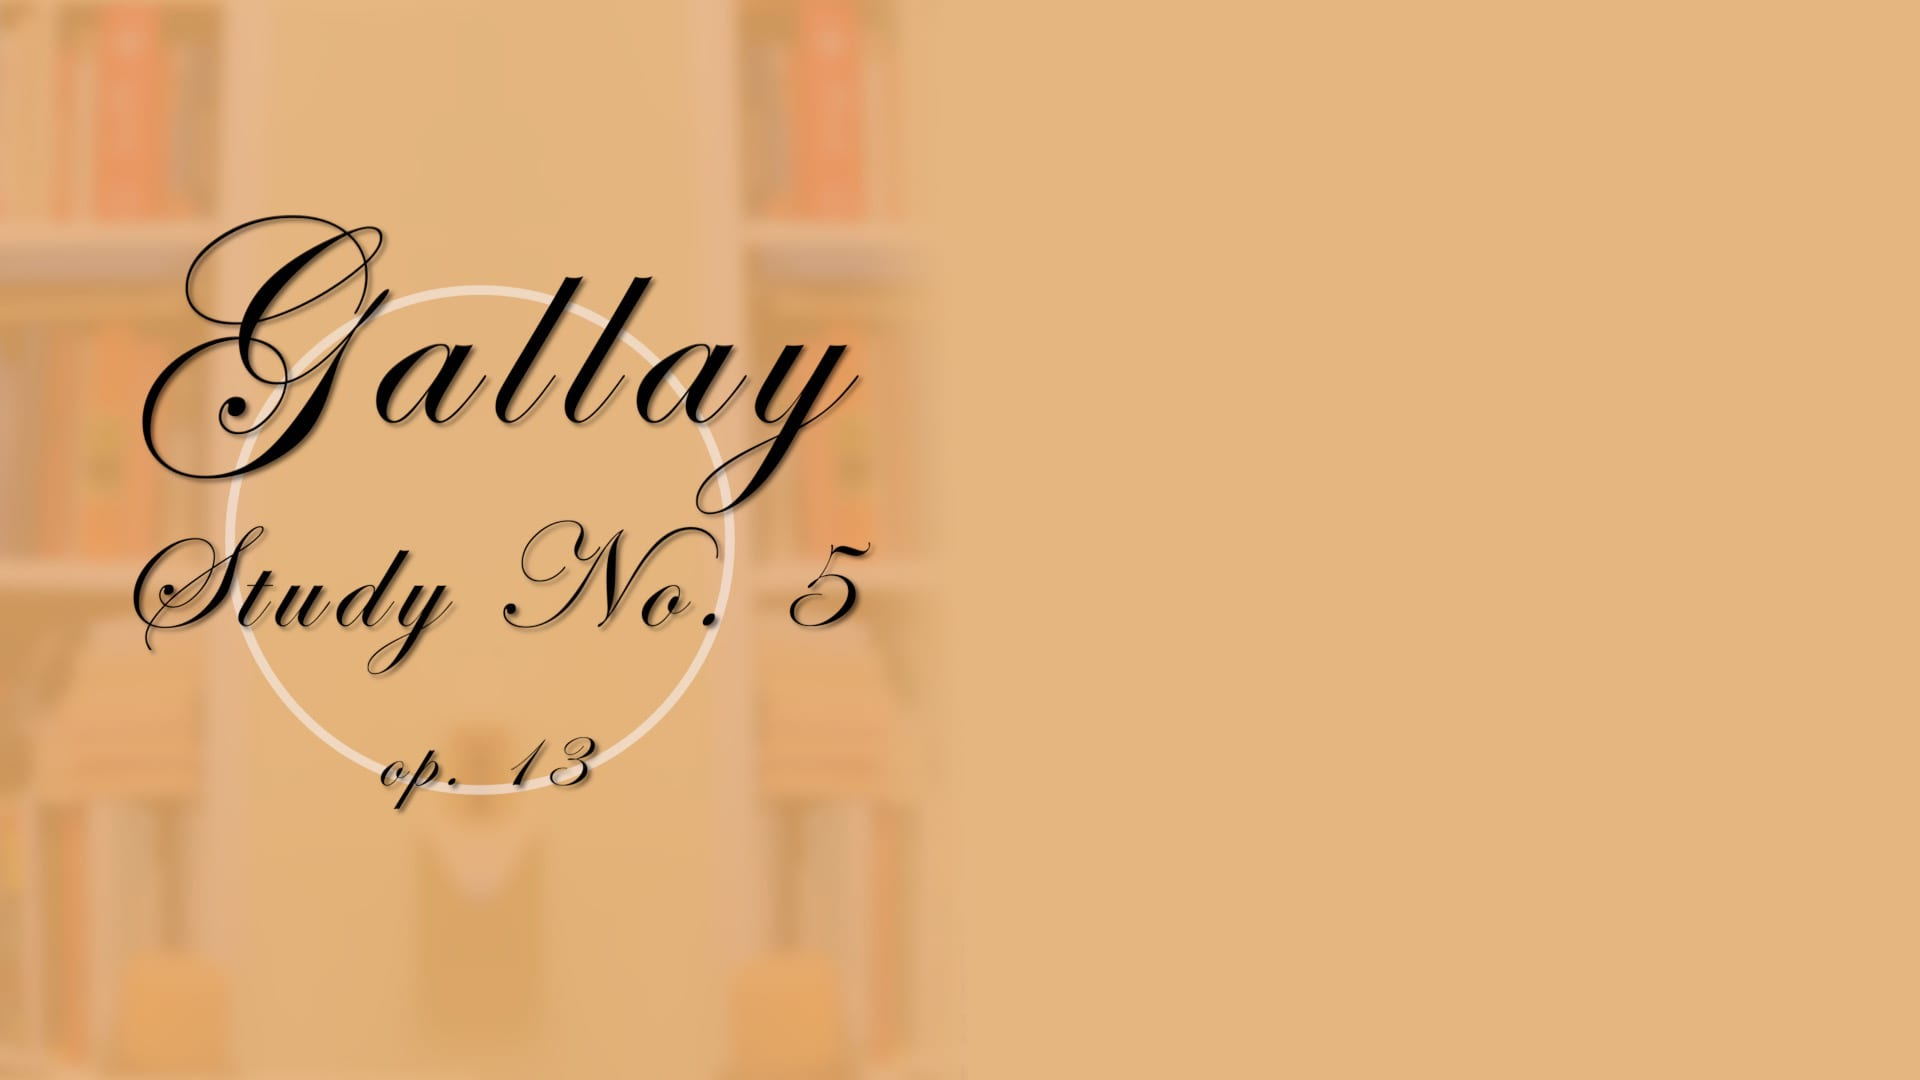 Gallay Study No. 5 Trailer